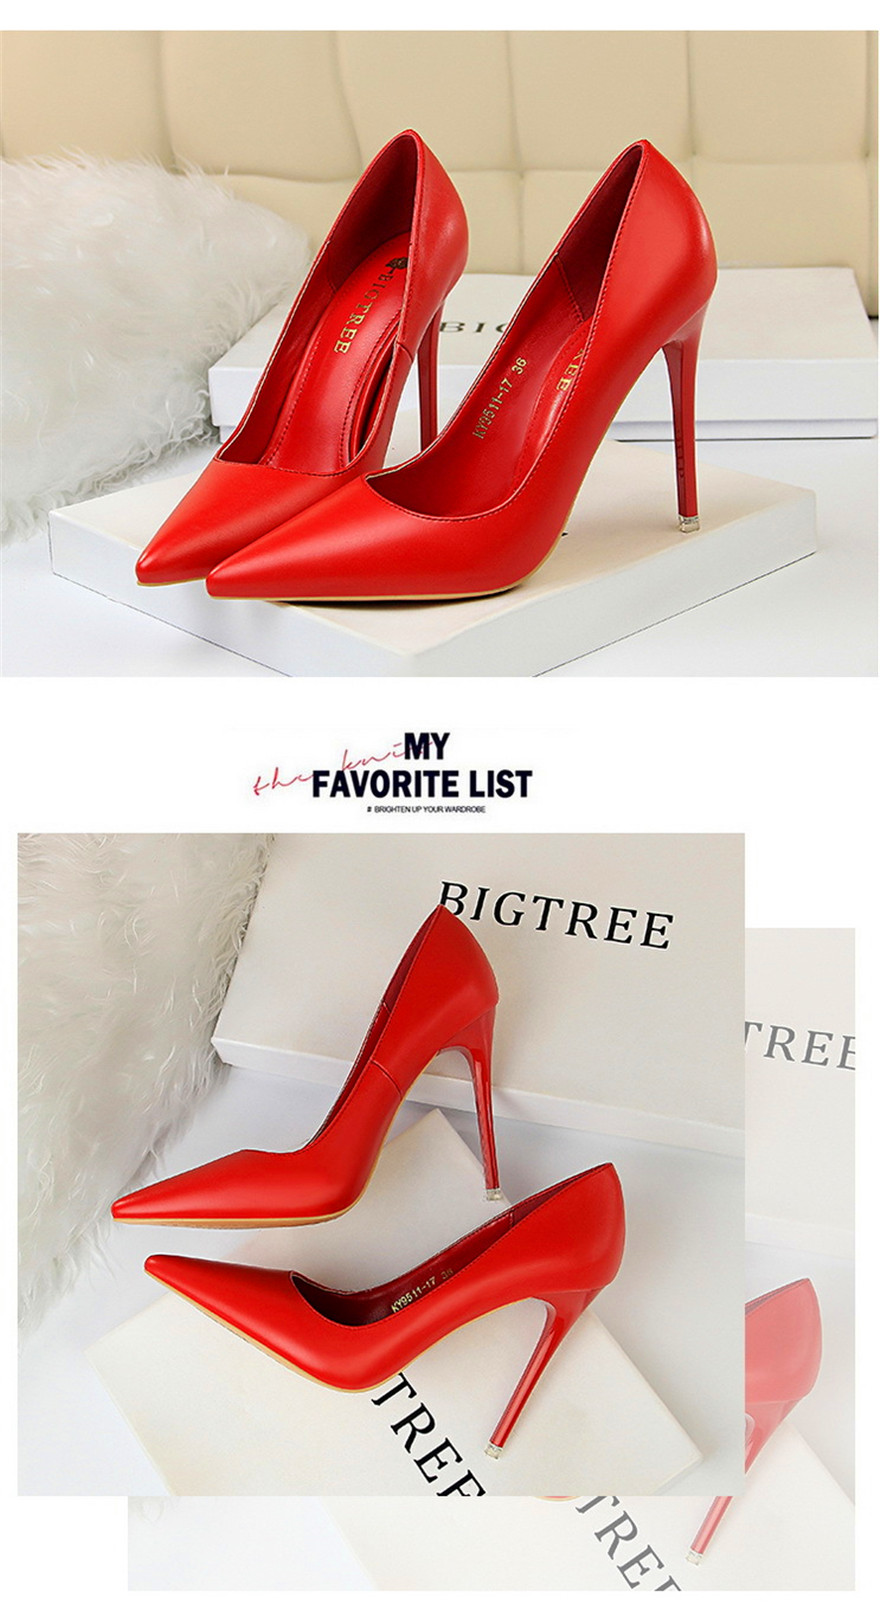 BIGTREE Soft Leather Shallow Fashion Women's High Heels Shoes Candy Colors Pointed Toe Women Pumps Show Thin Female Office Shoe 10